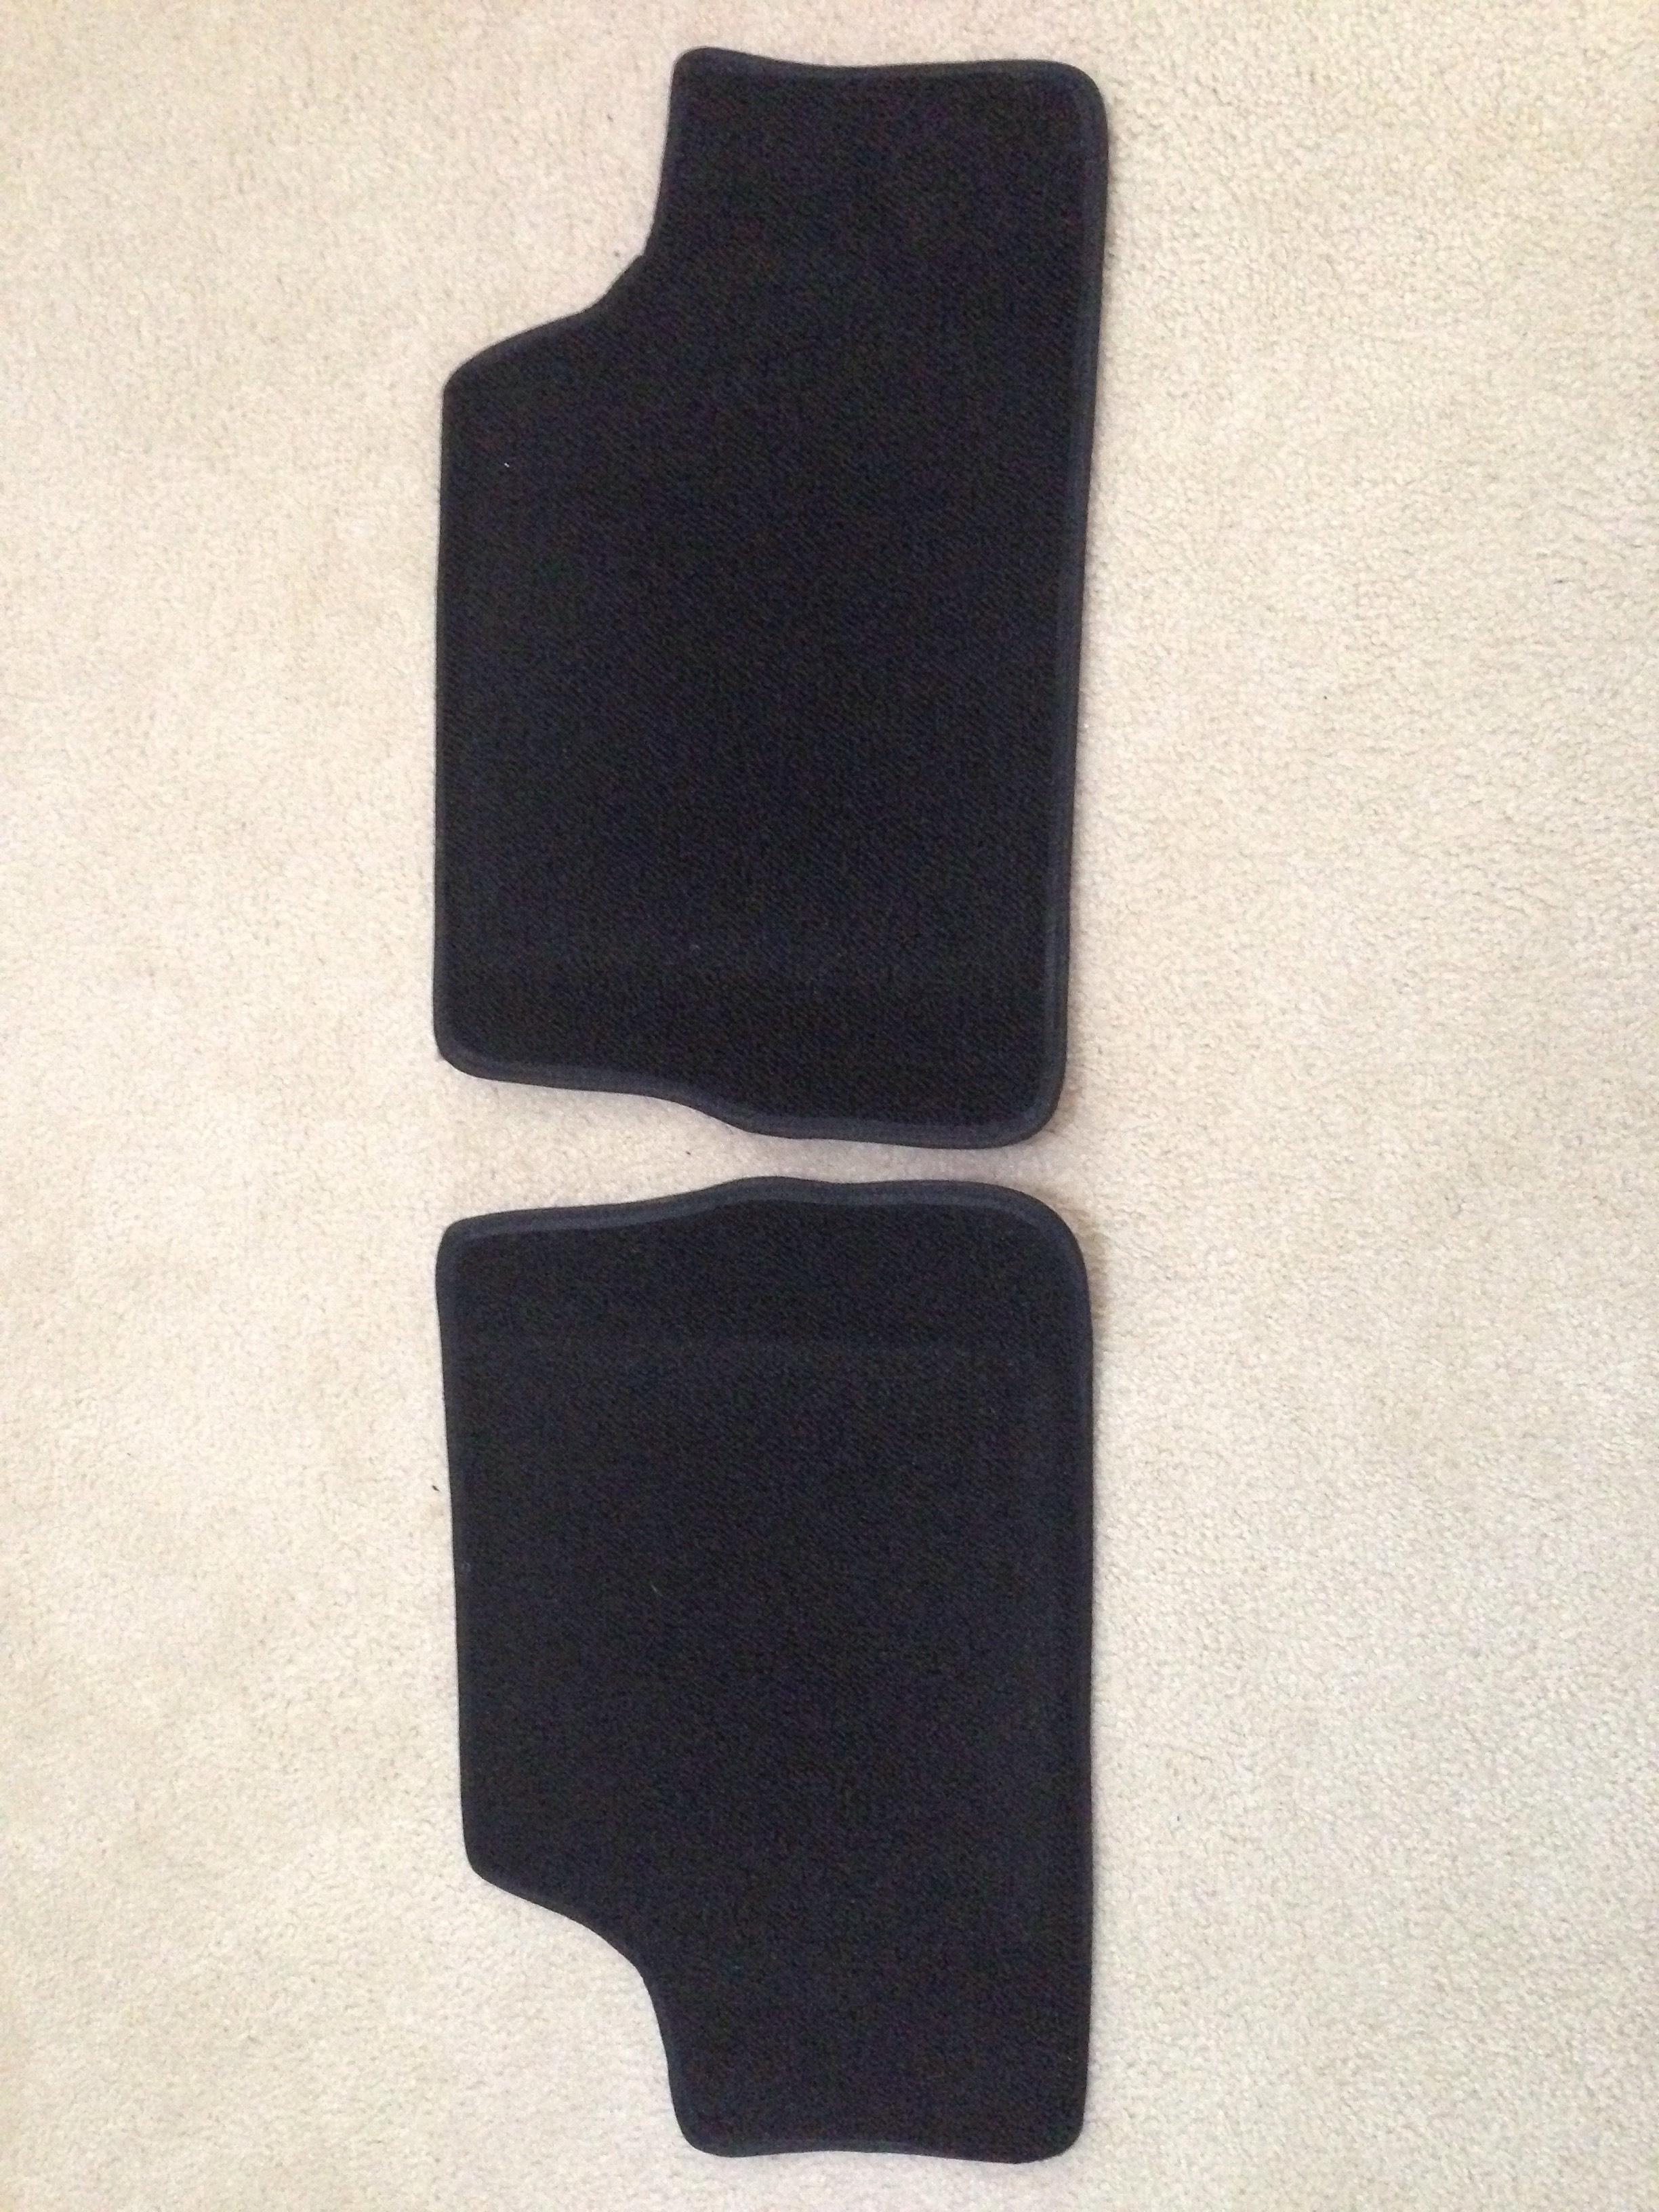 New rear carpet pieces (two) - SOLD